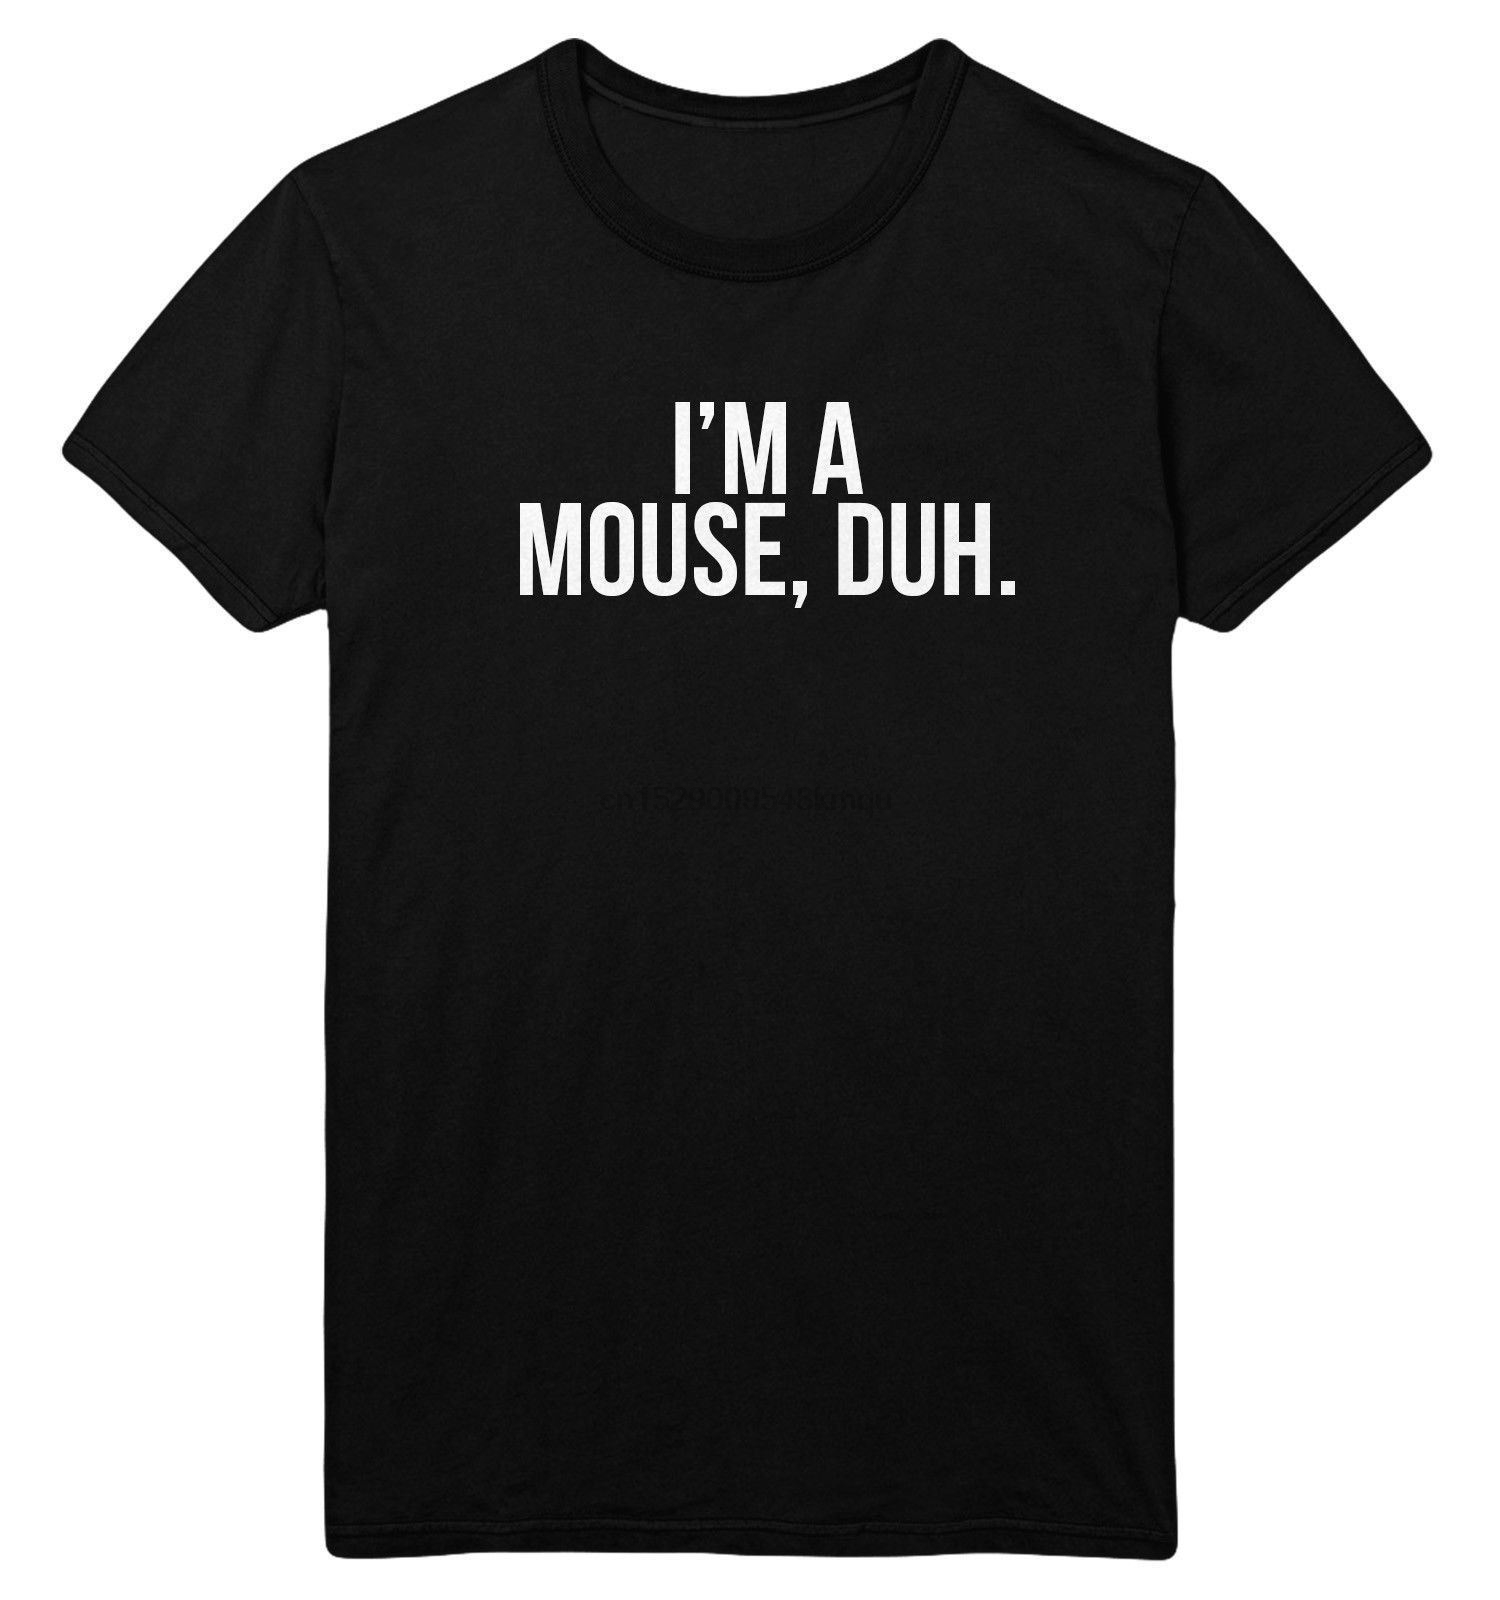 !CLEARANCE SALE! Im A Mouse Duh T Shirt Top Mean Girls Fancy Dress Cheap CEM2 Comfortable t shirtCasual Short Sleeve TEE